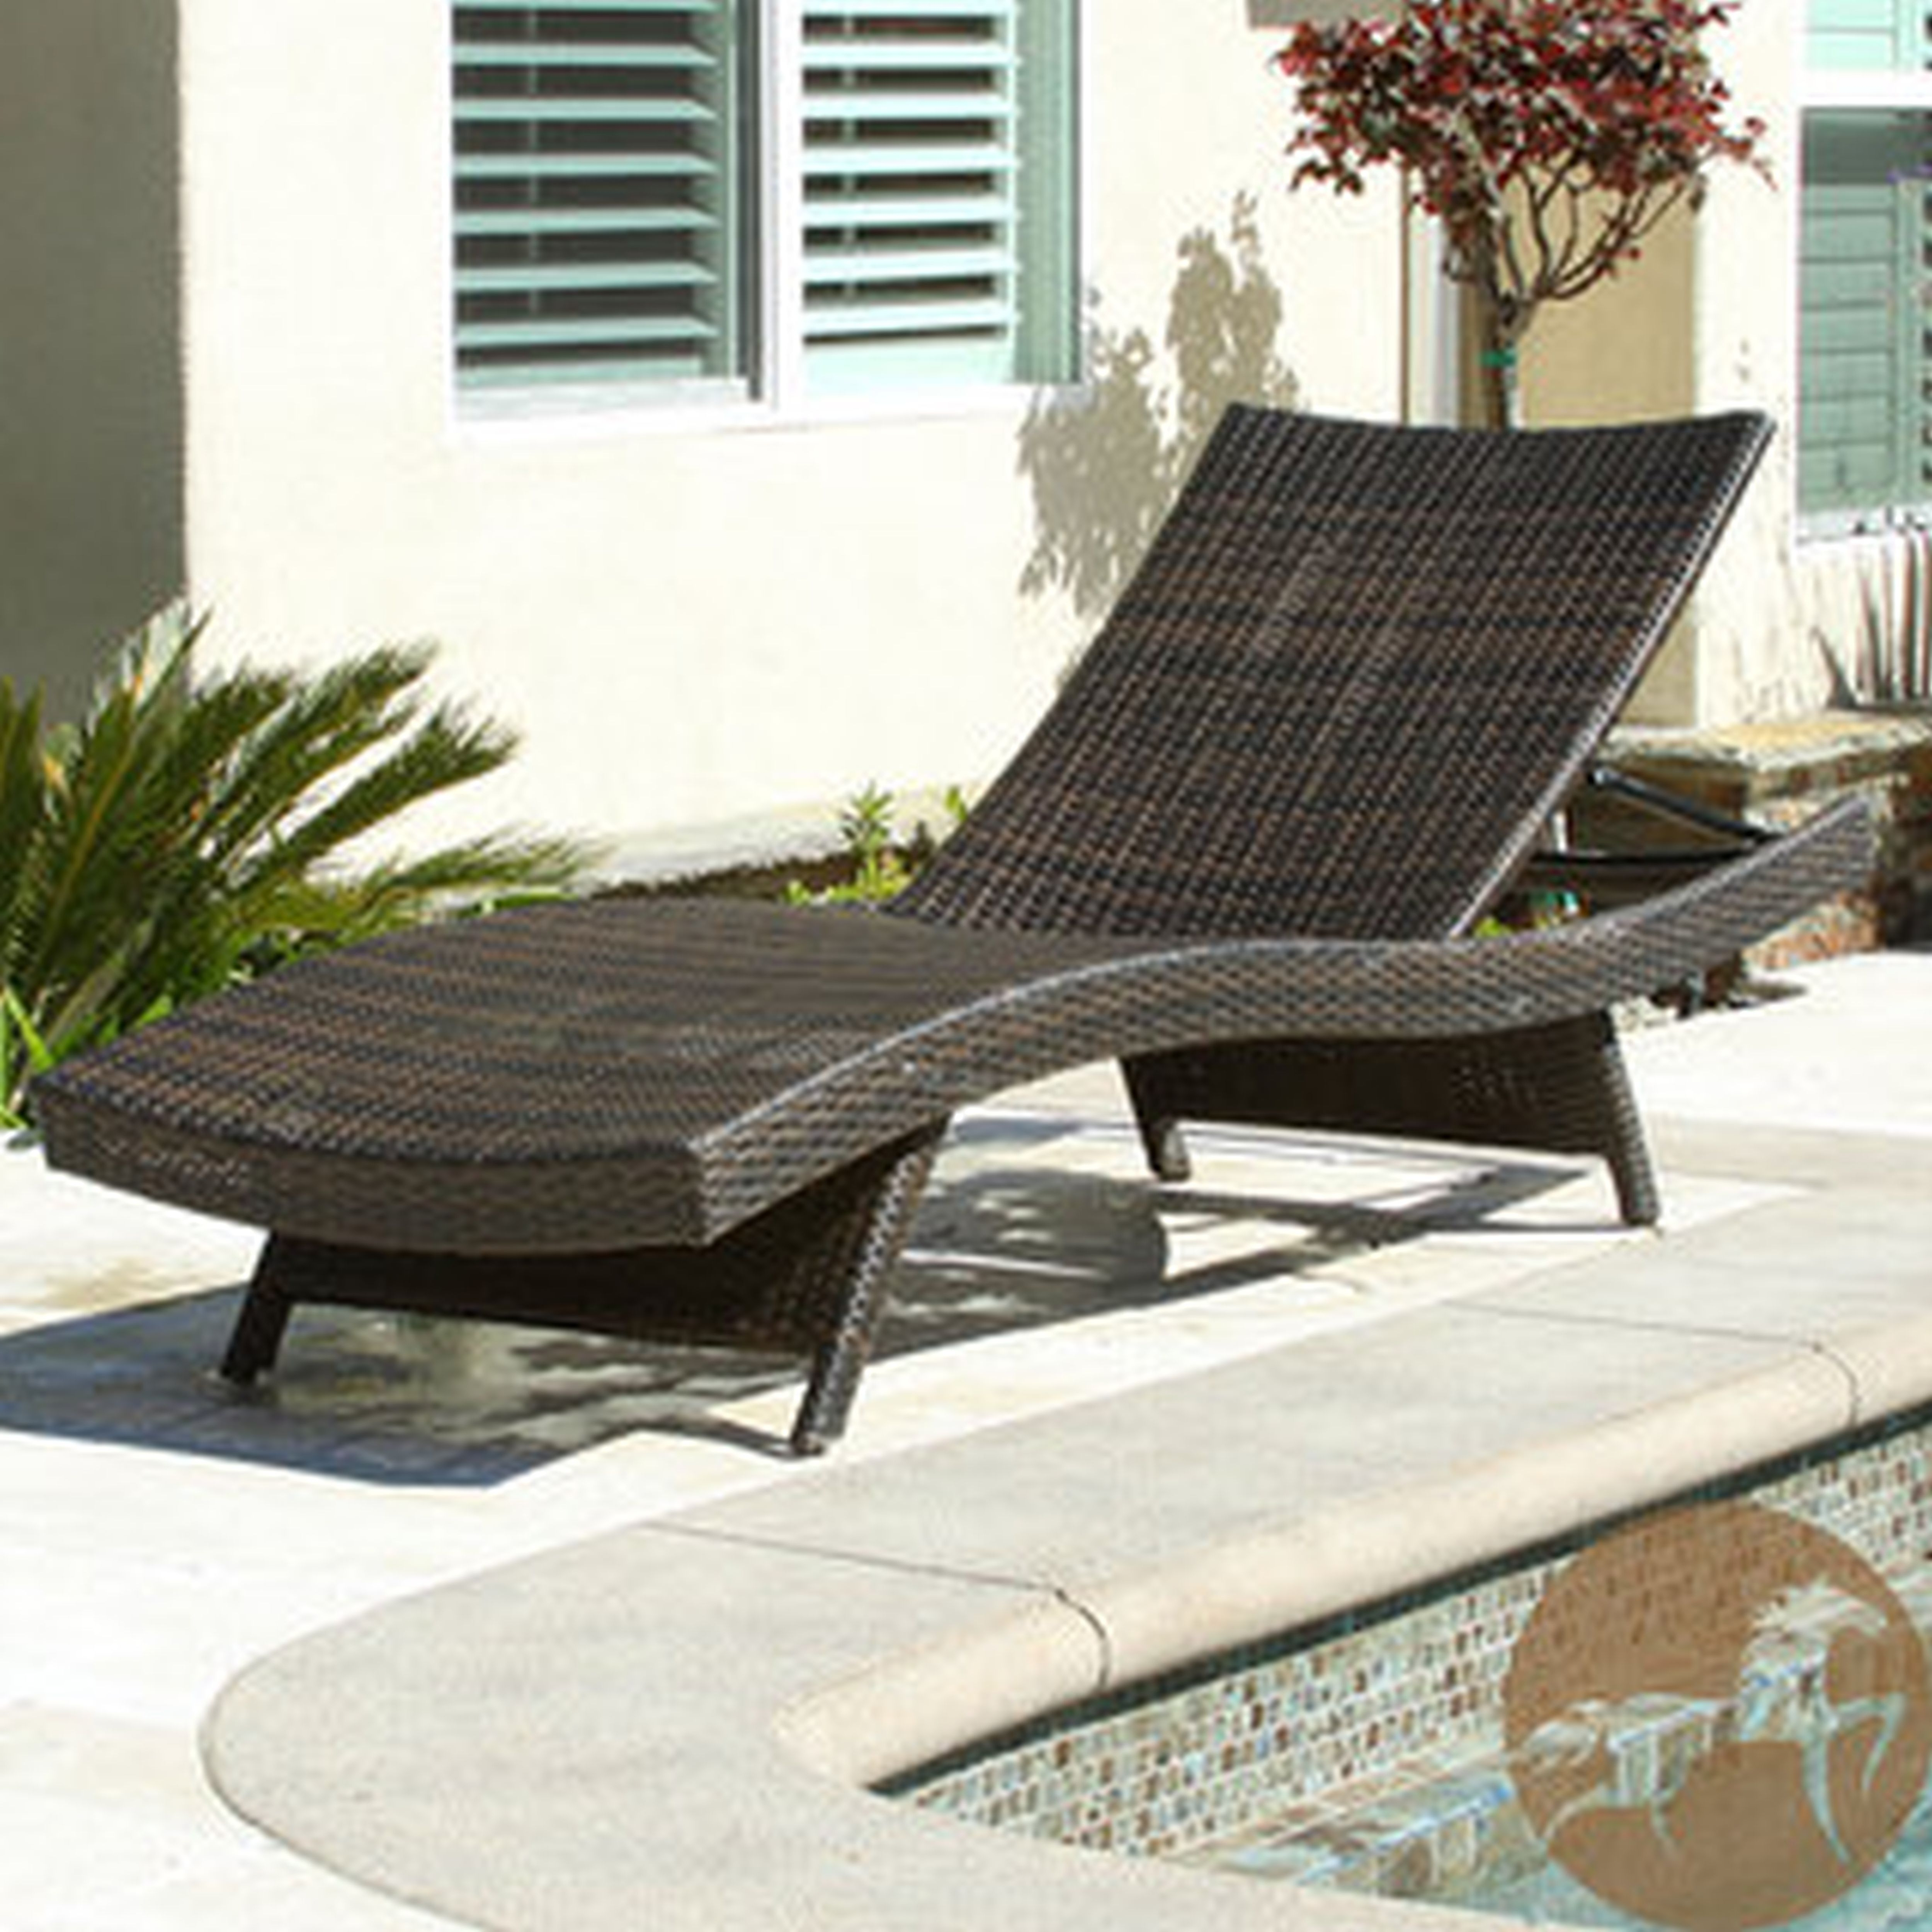 Latest Chaise Lounge Chairs At Lowes Inside Furniture: All Weather Wicker Patio Furniture Design With Lowes (View 9 of 15)